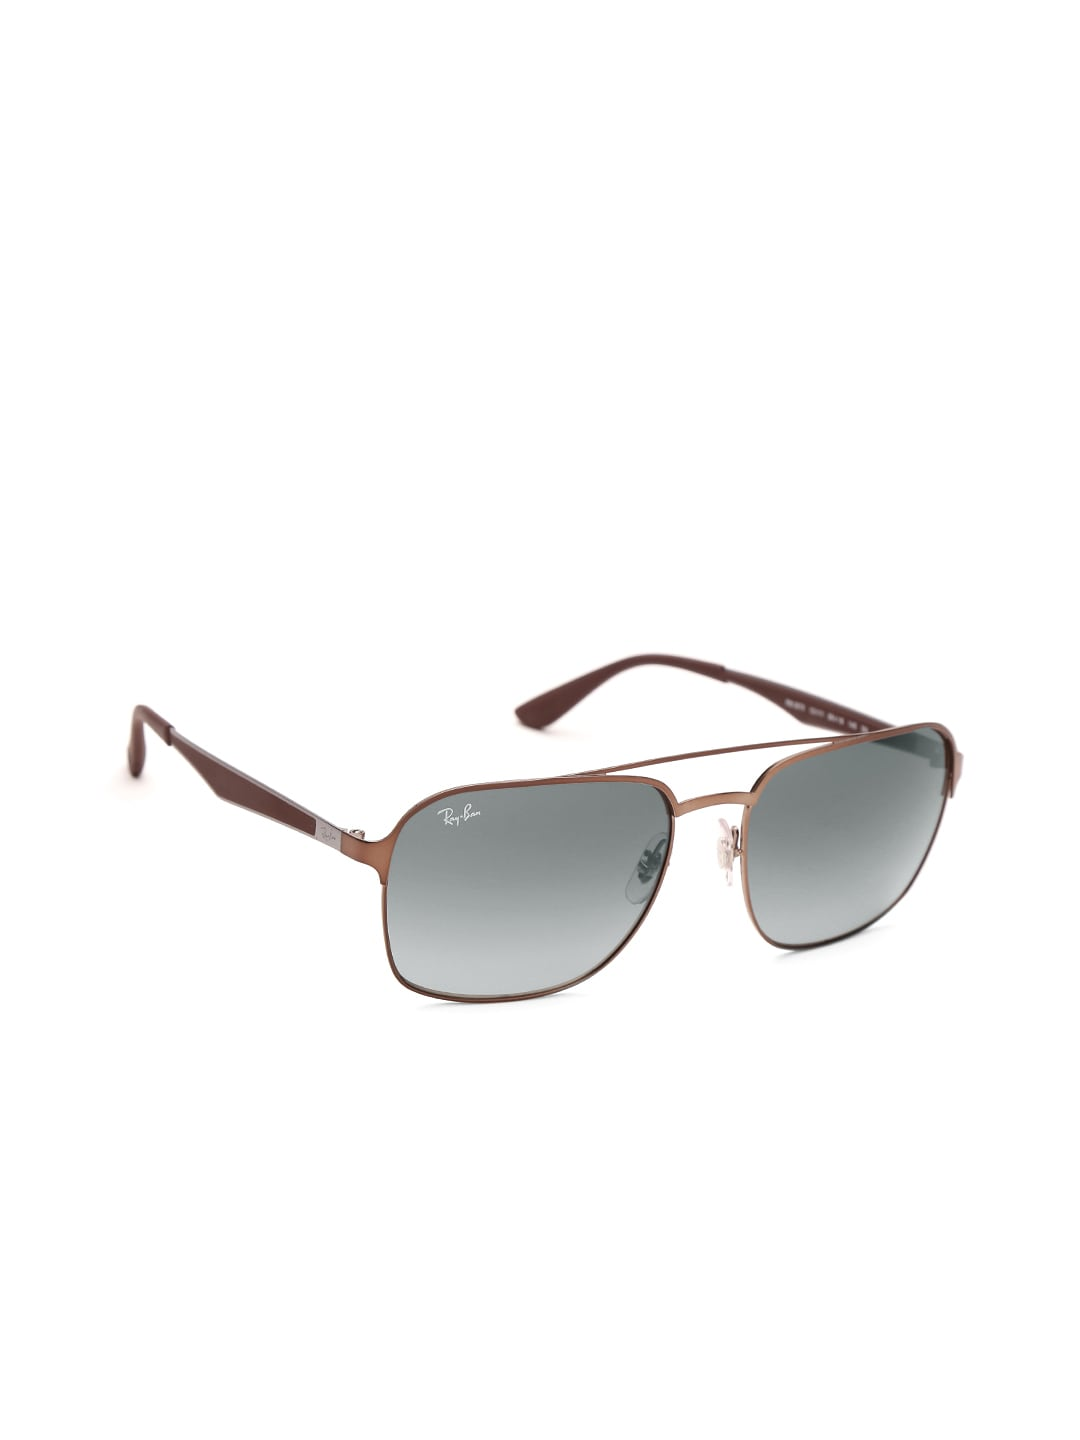 b1f94daf53 Ray Ban Species - Buy Ray Ban Species online in India